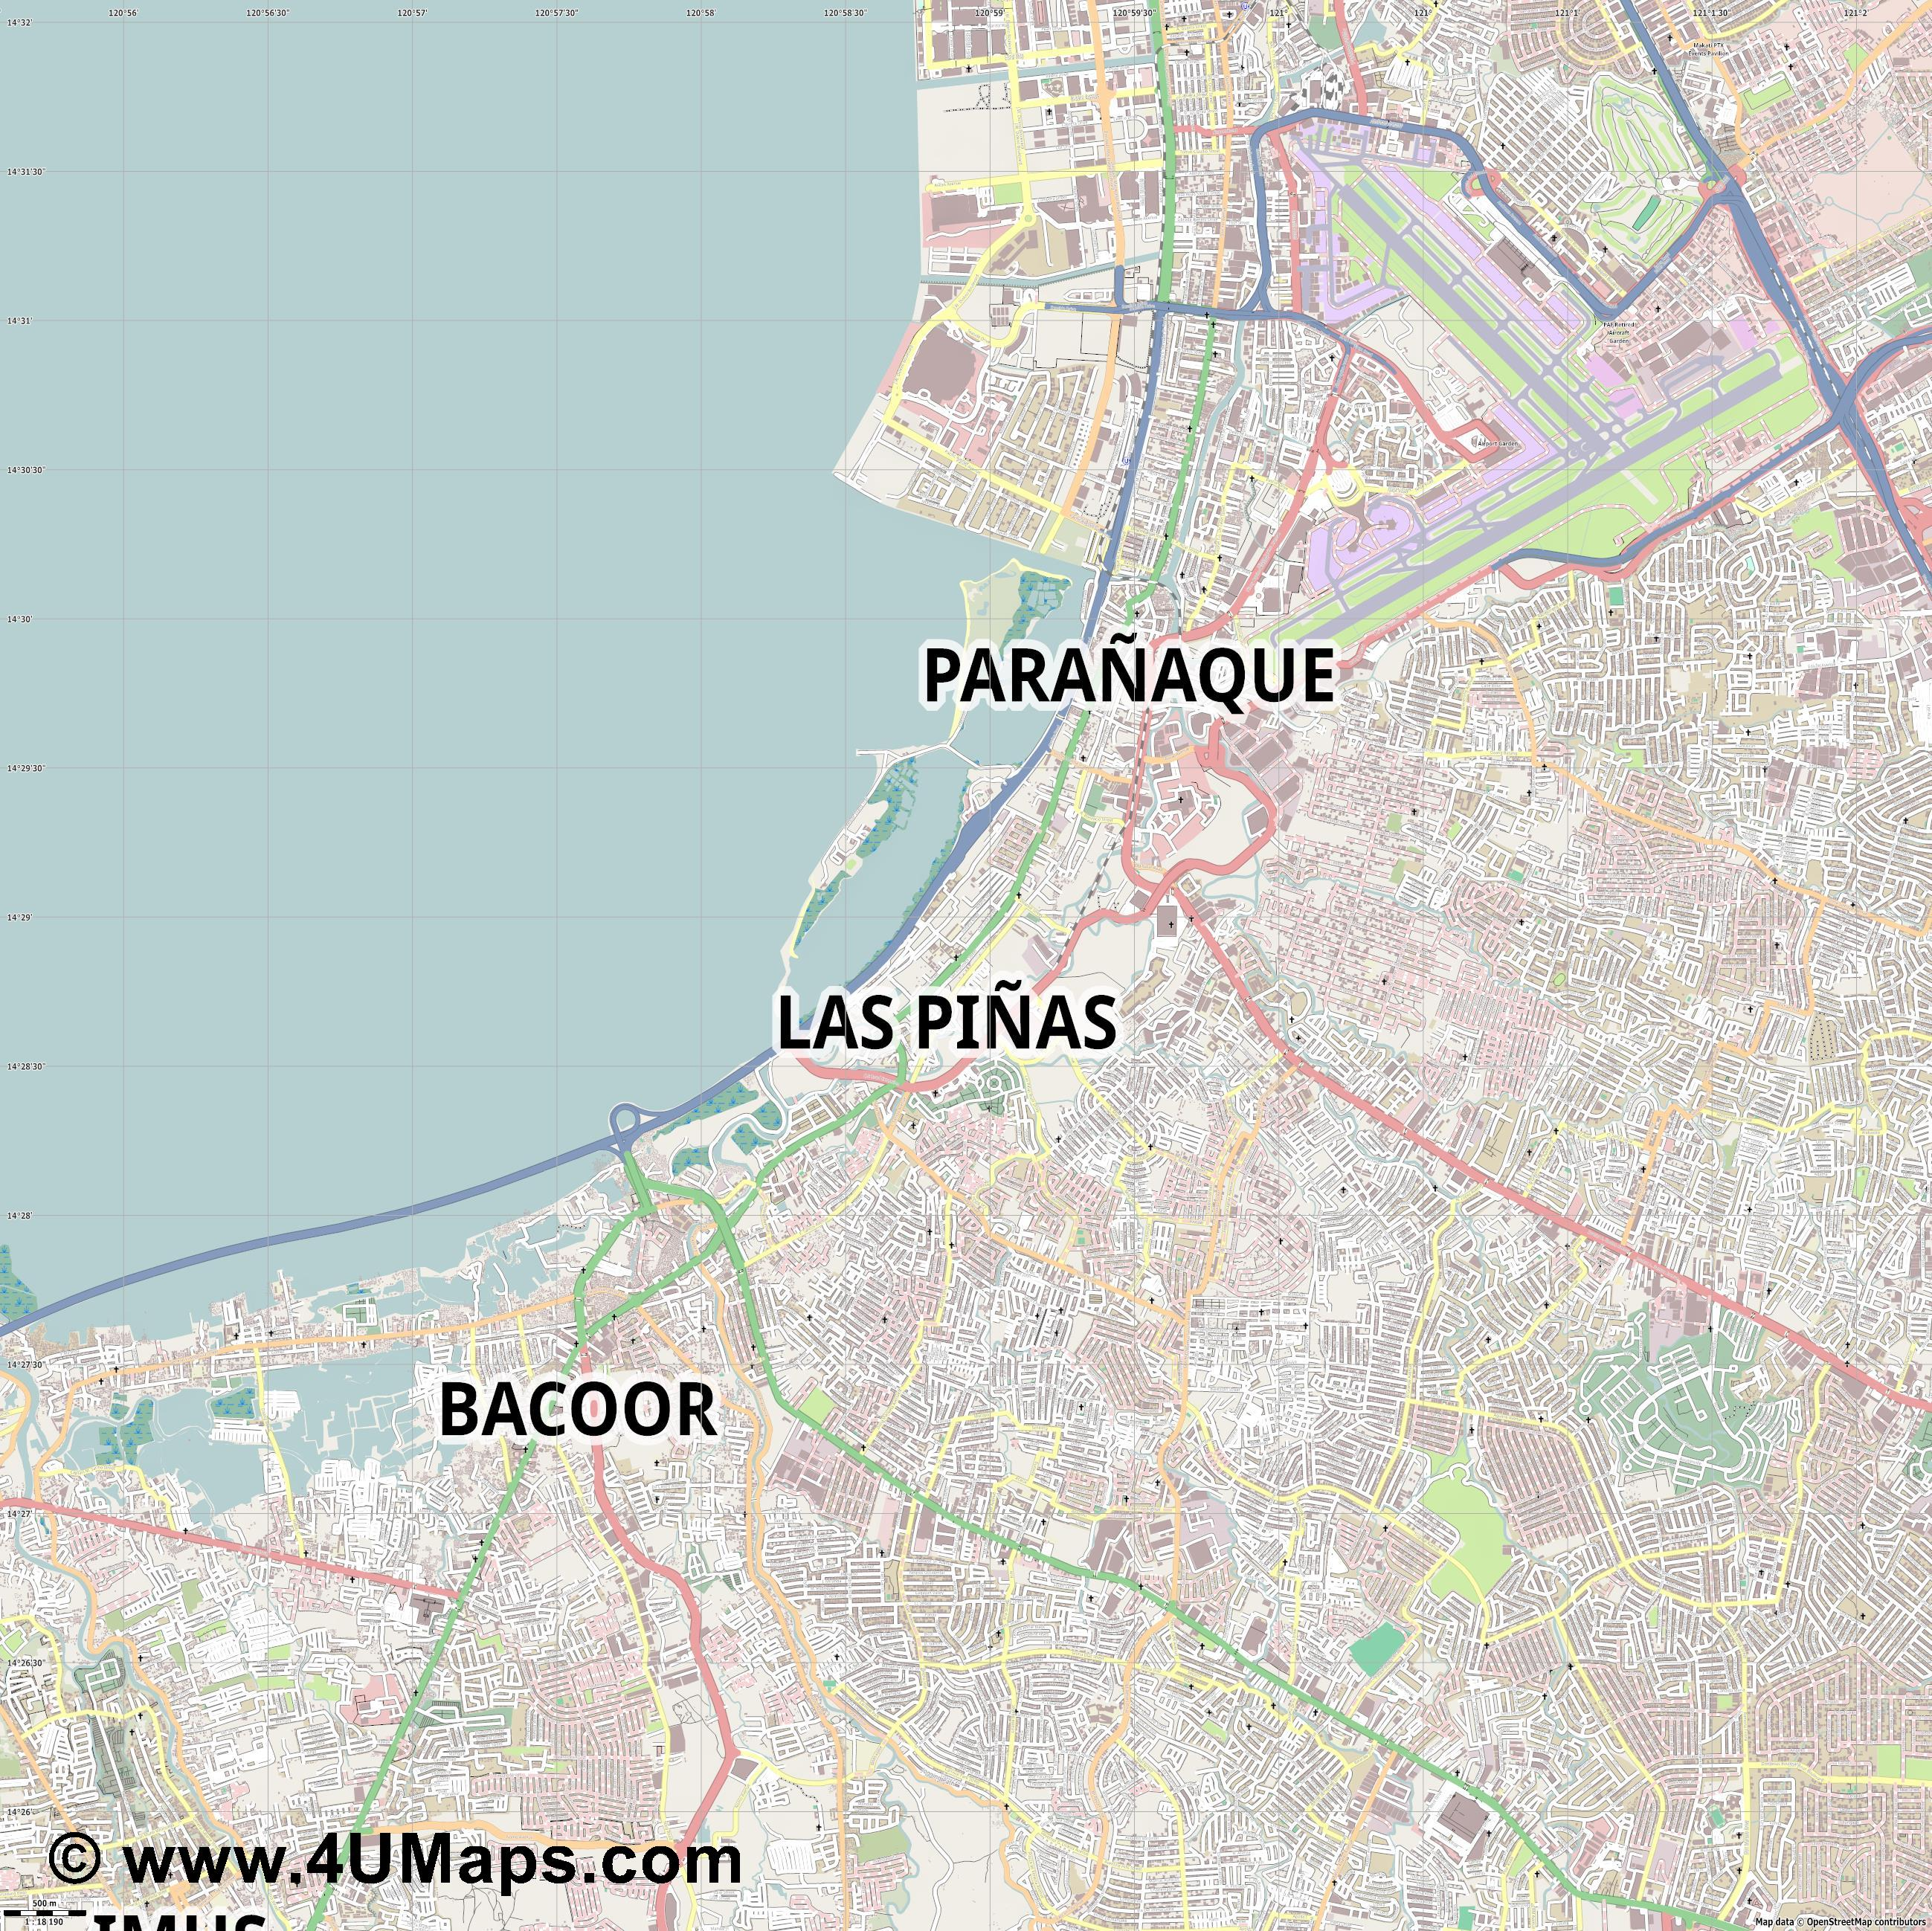 Las Piñas  jpg ultra high detail preview vector city map